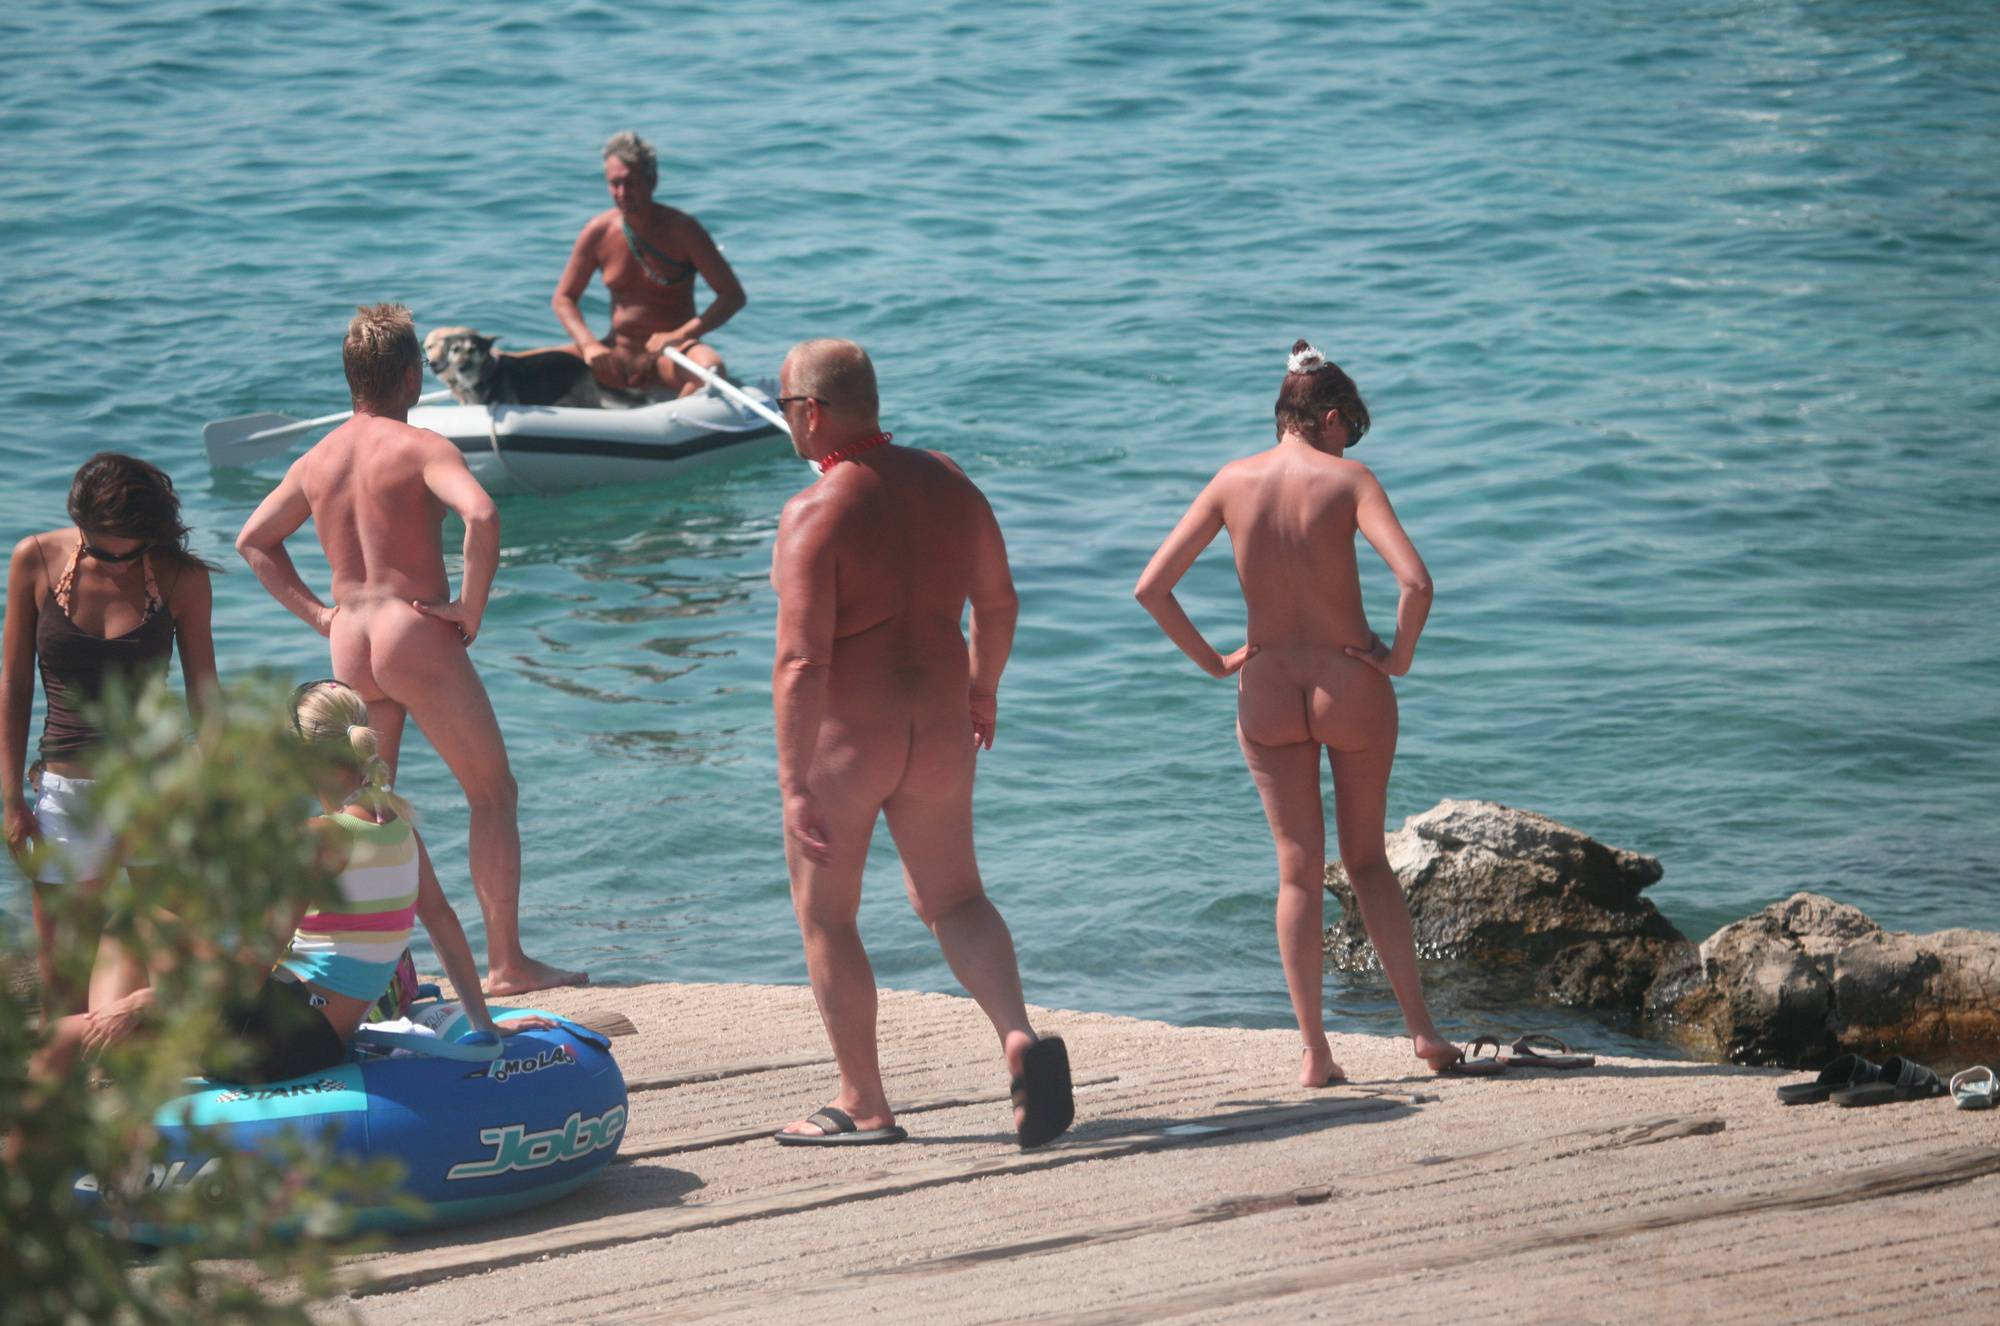 Nudist Pics Bares FKK Water Boating - 1